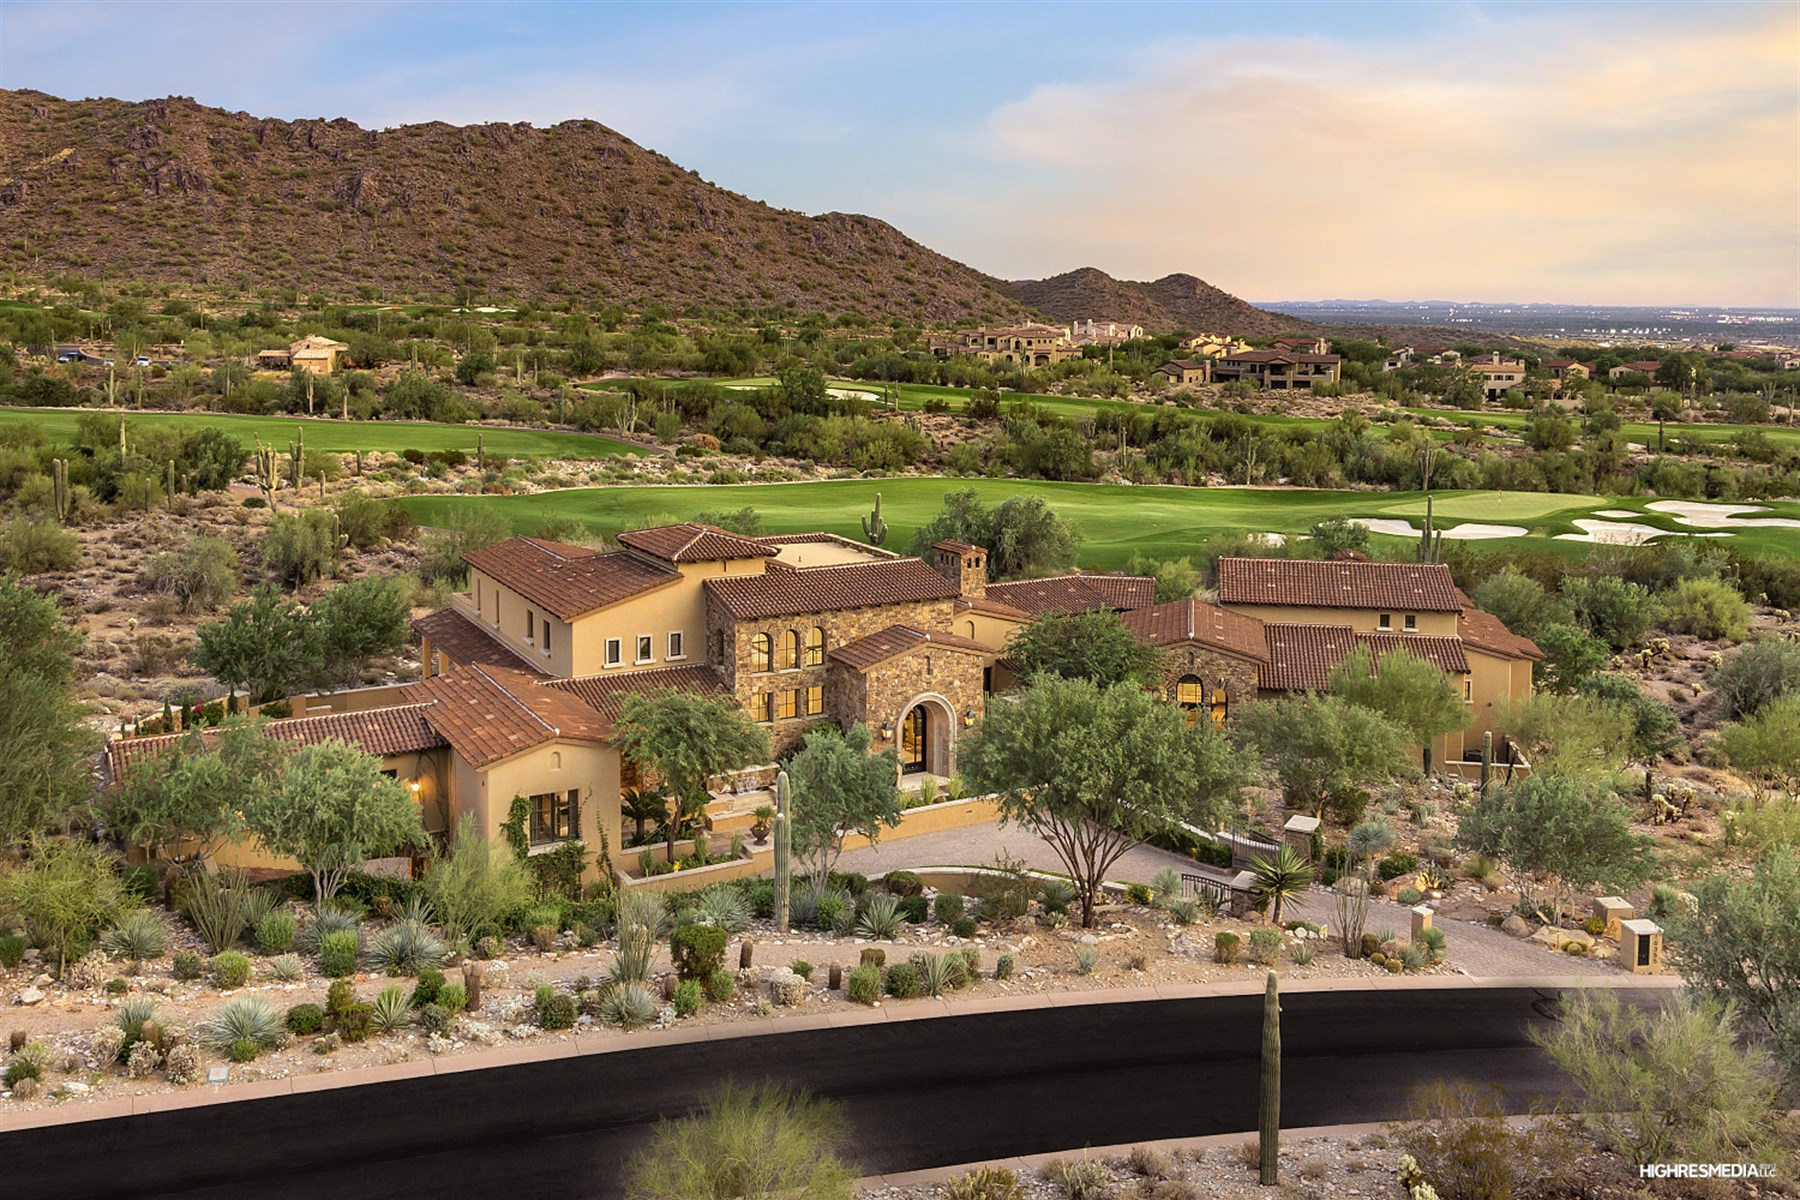 Maison unifamiliale pour l Vente à One of the finest residences Silverleaf has to offer 10355 E Robs Camp Rd Scottsdale, Arizona 85255 États-Unis